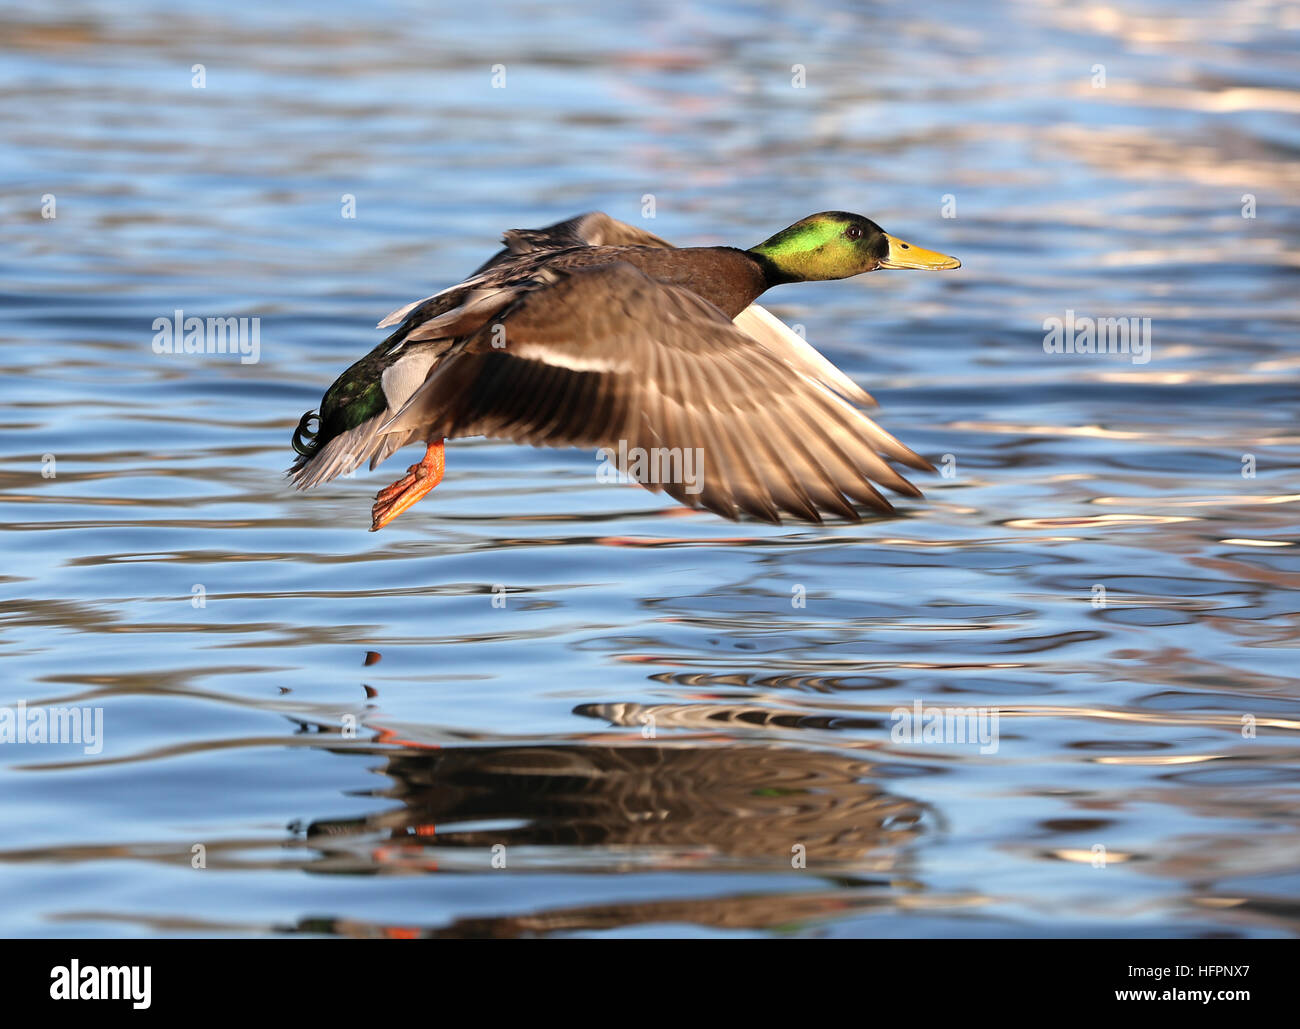 Close up of a male Mallard Duck flying along a river - Stock Image